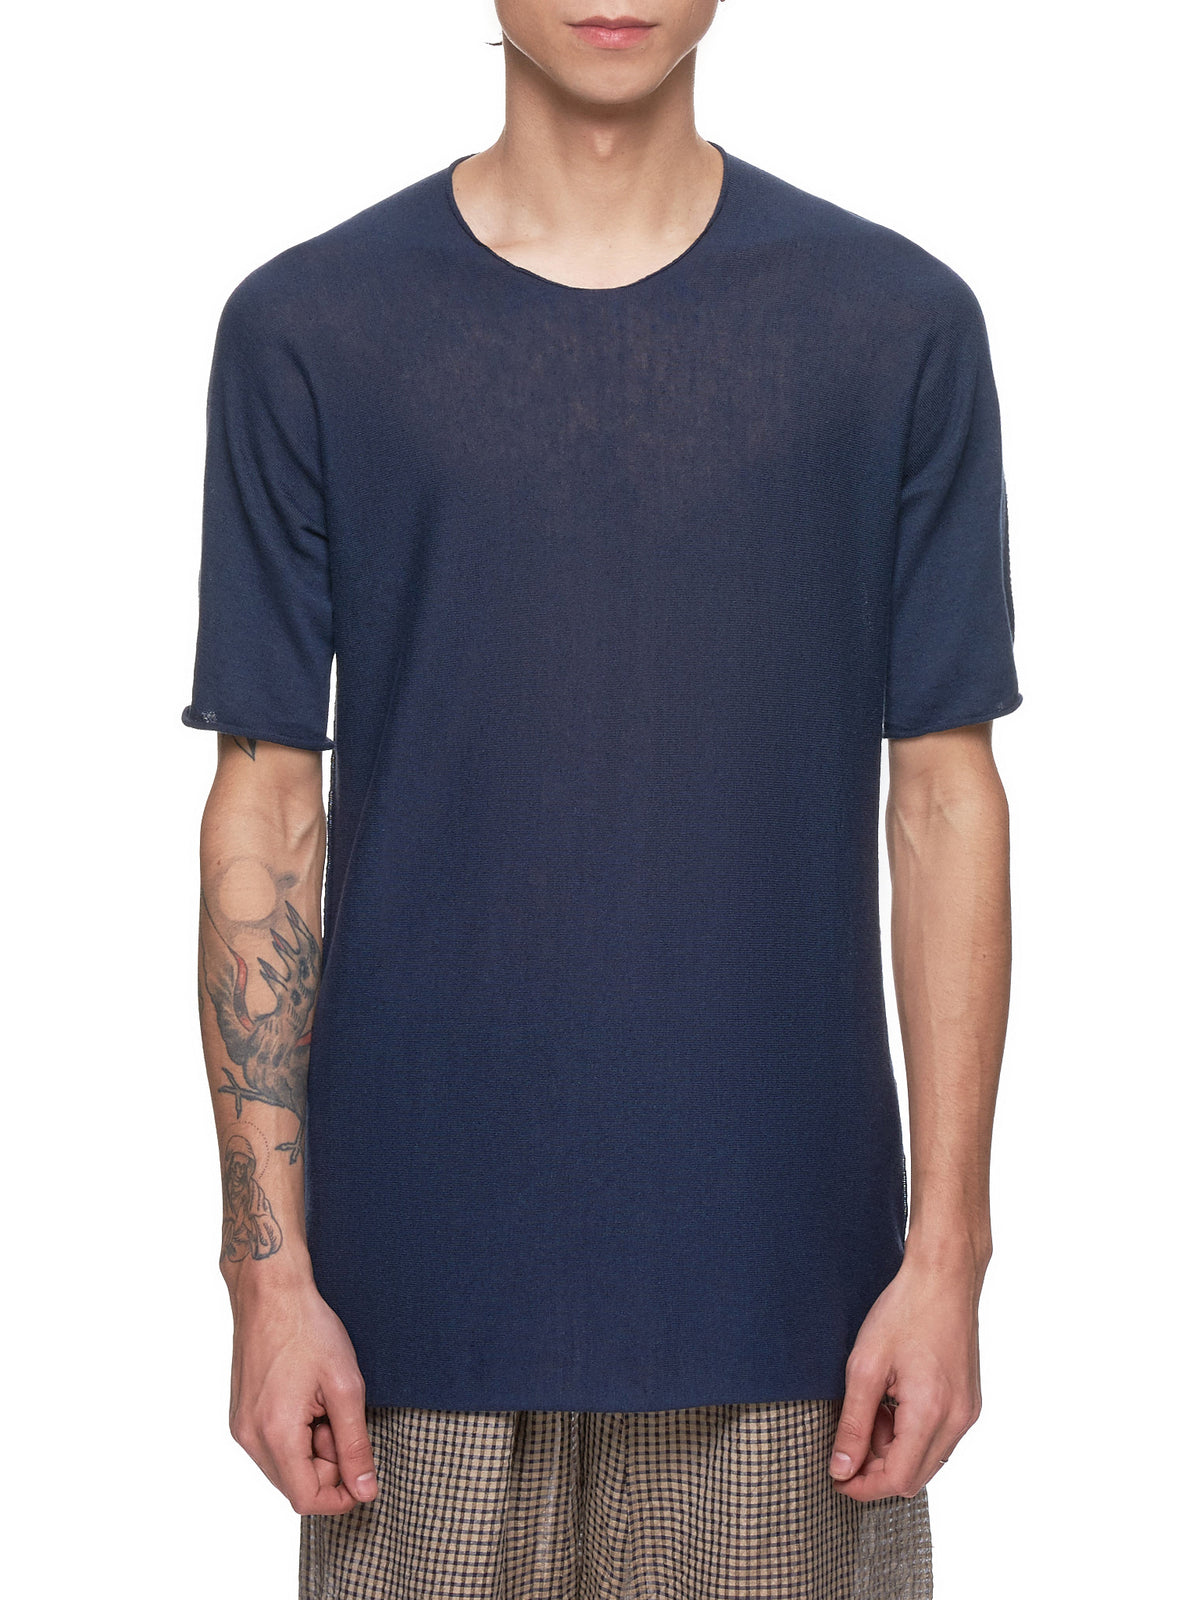 Arched T-Shirt (33YXTS299-CC14-NAVY)